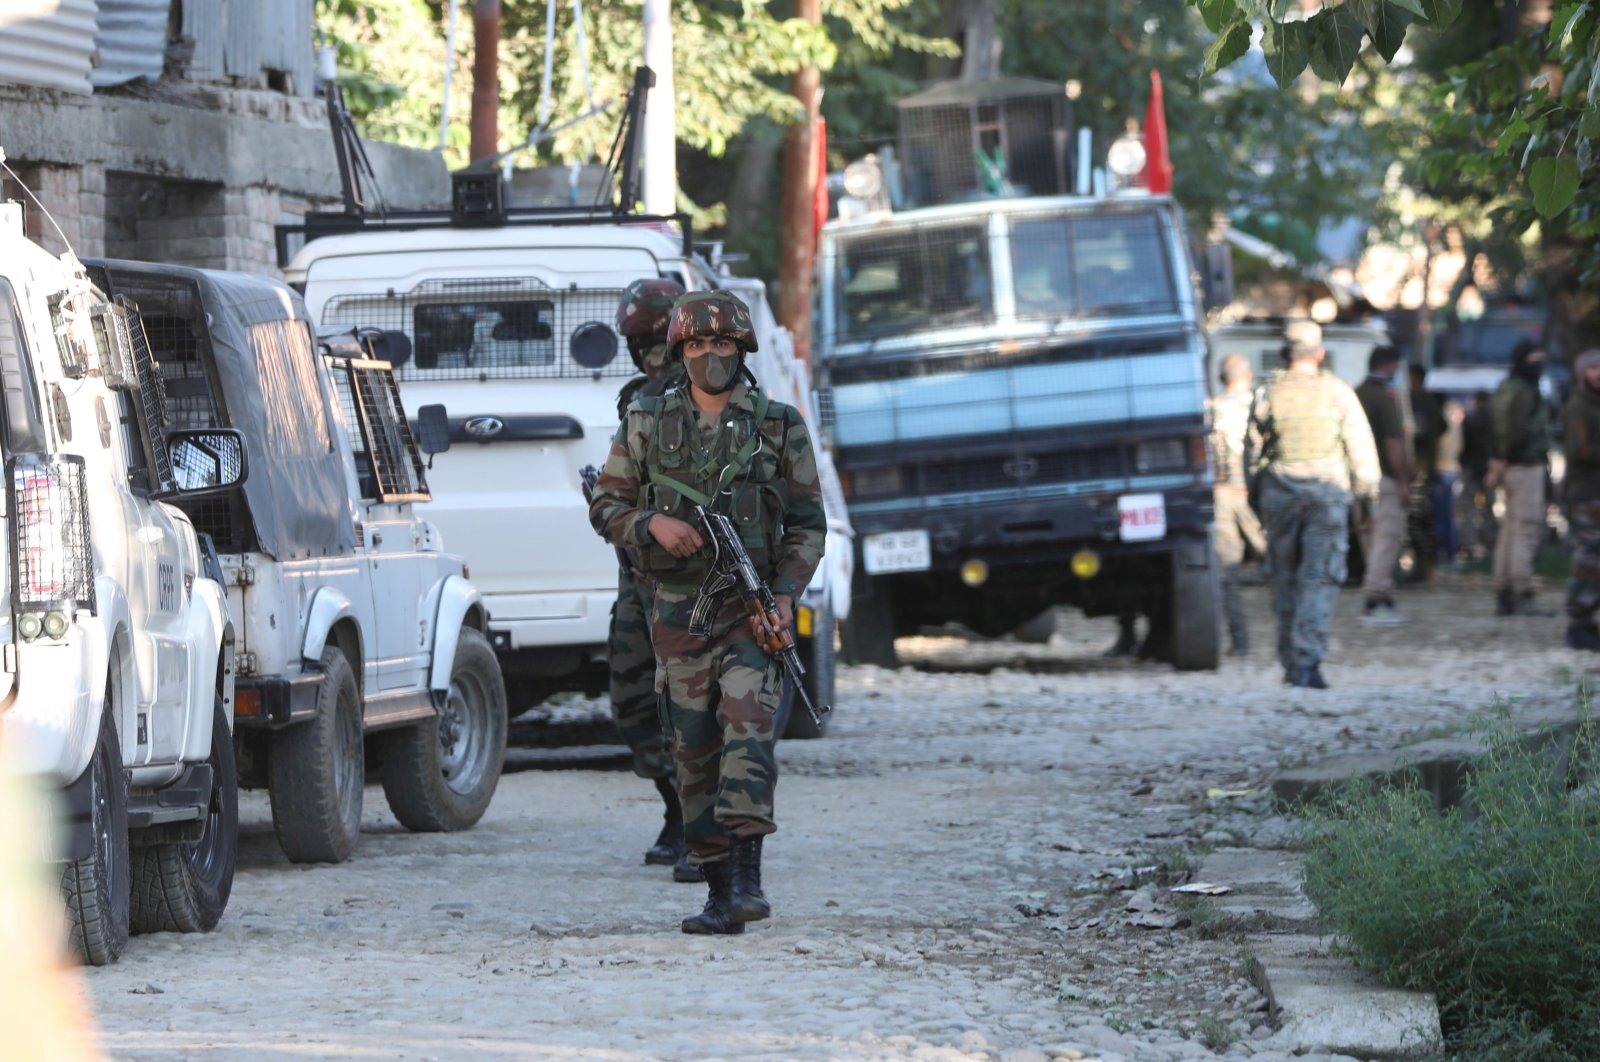 Indian security personnel stand guard near the site of a gunfight in a village in the Kawoosa area of central Kashmir's Budgam district, some 20 kilometers from Srinagar, the summer capital of Indian Kashmir, Sept. 7, 2020. (EPA Photo)